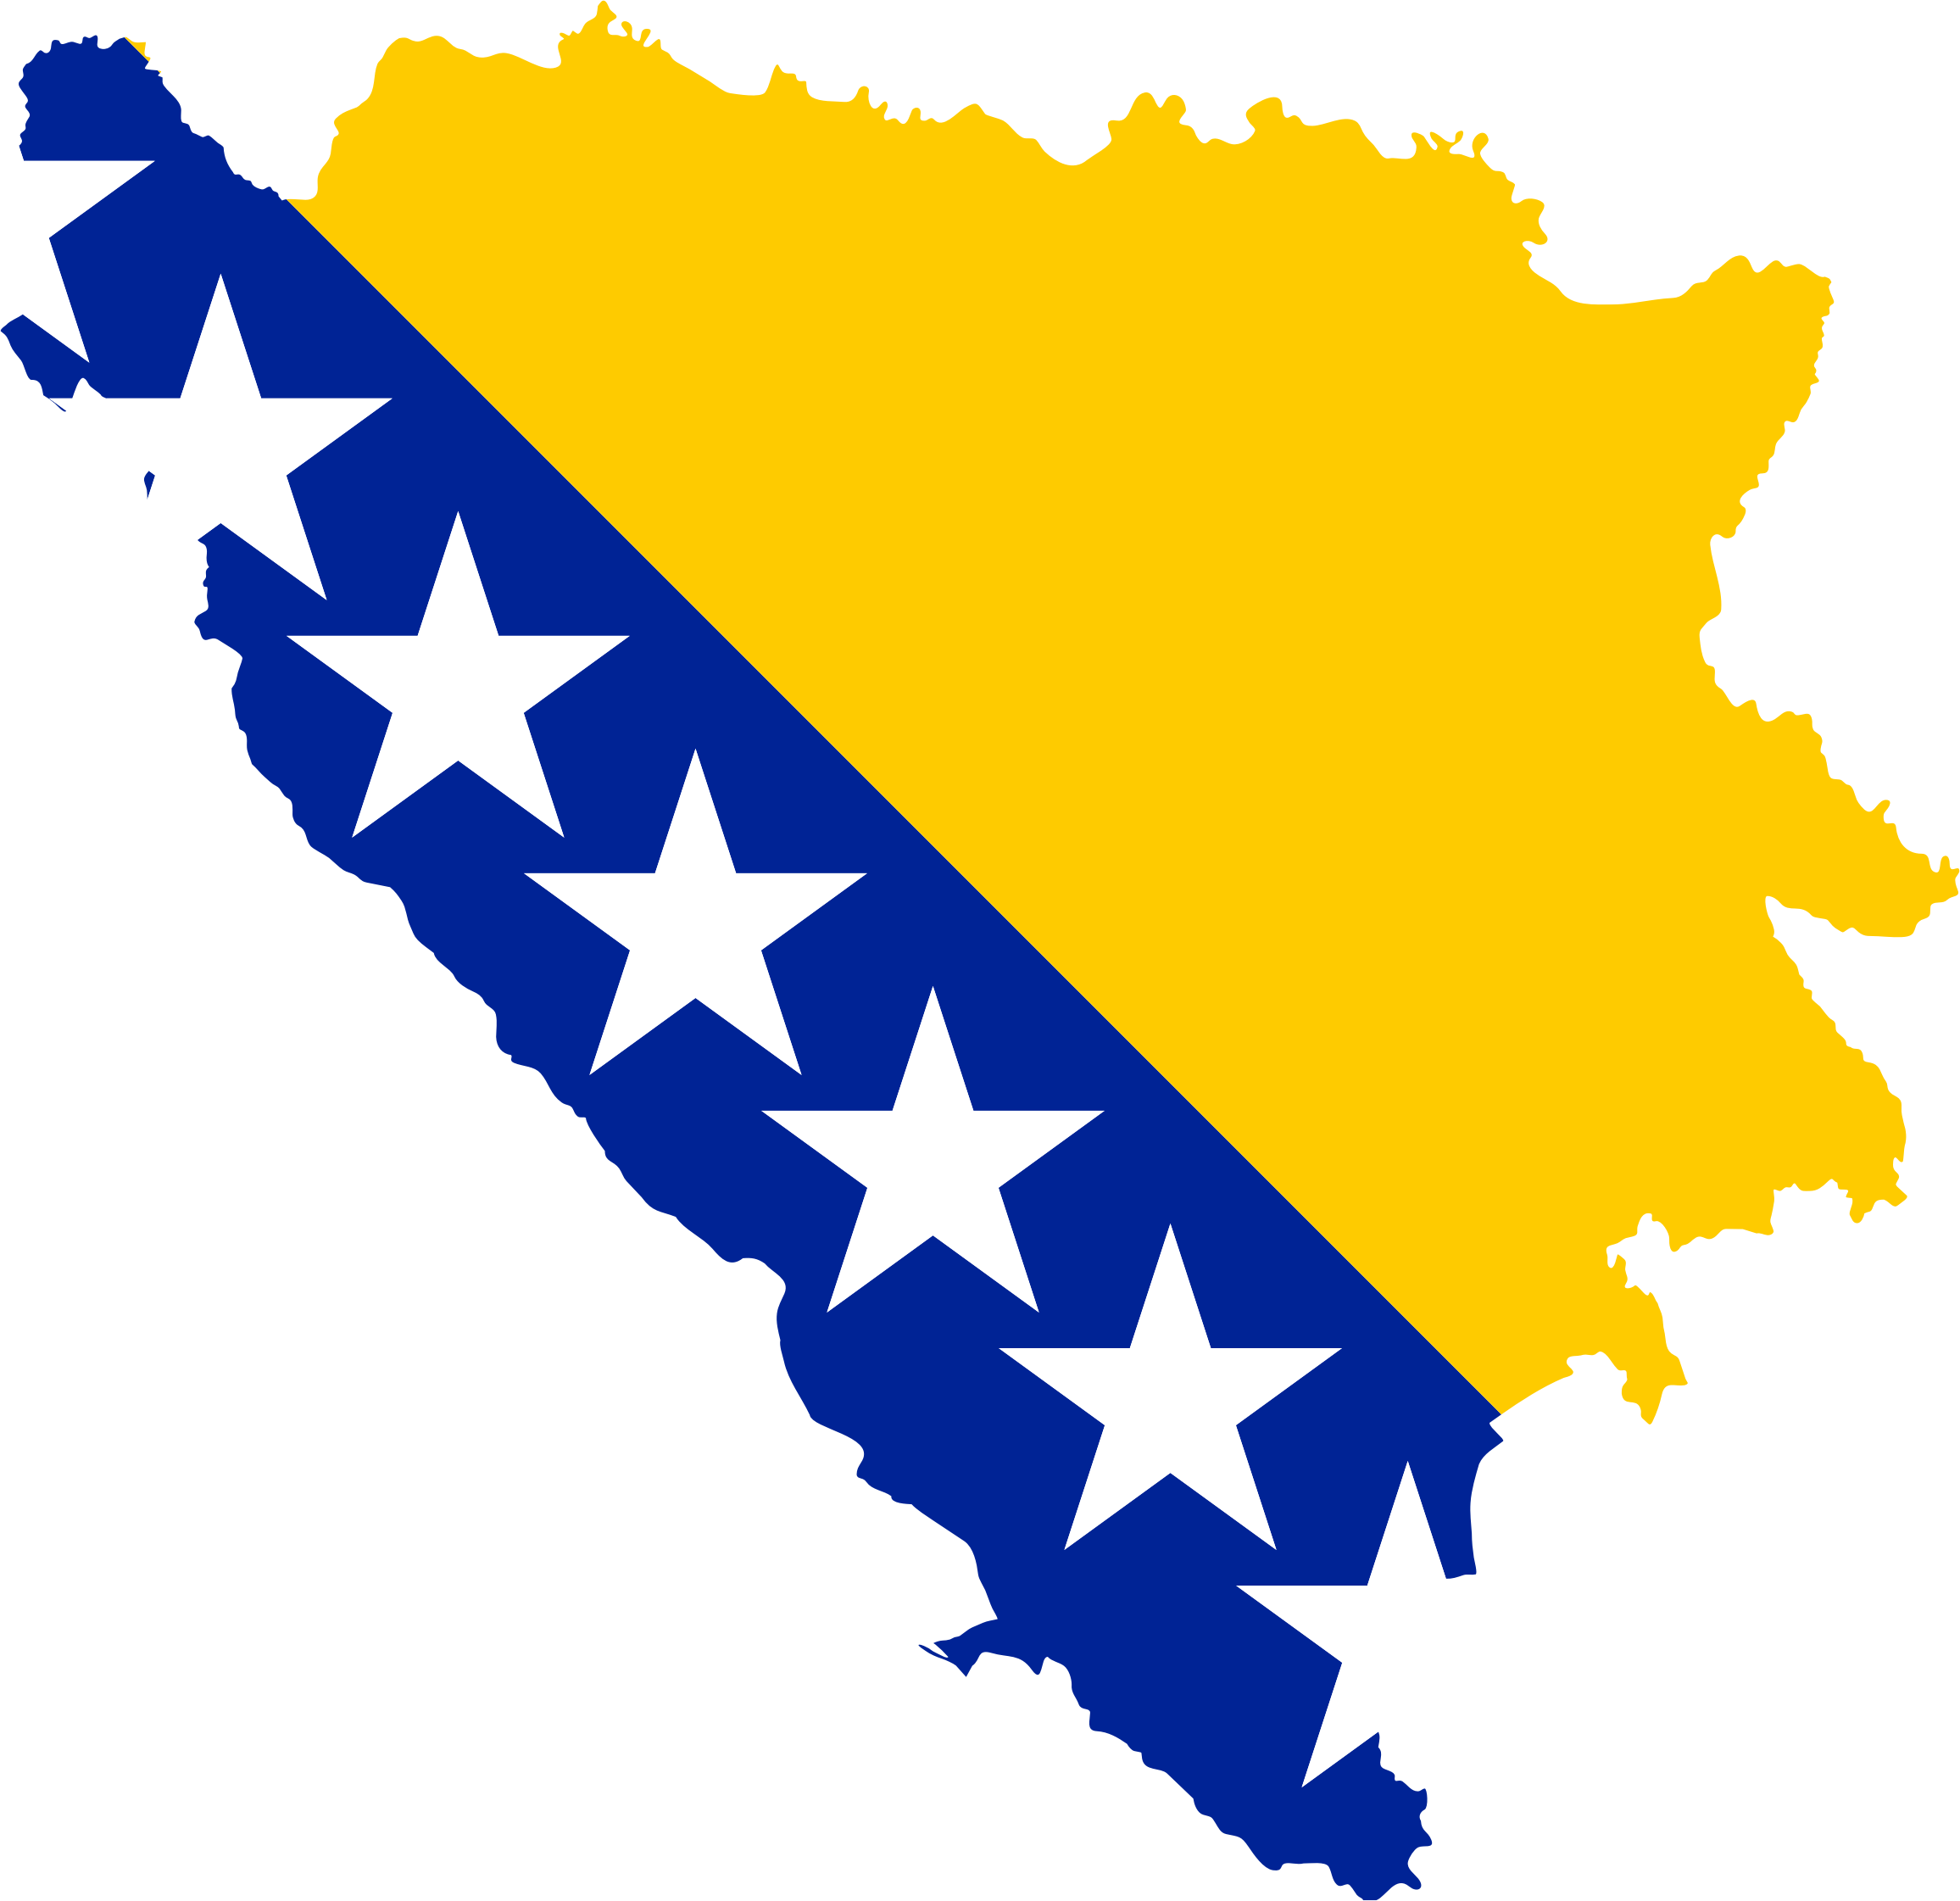 Bosnia And Herzegovina Map Flag by GDJ